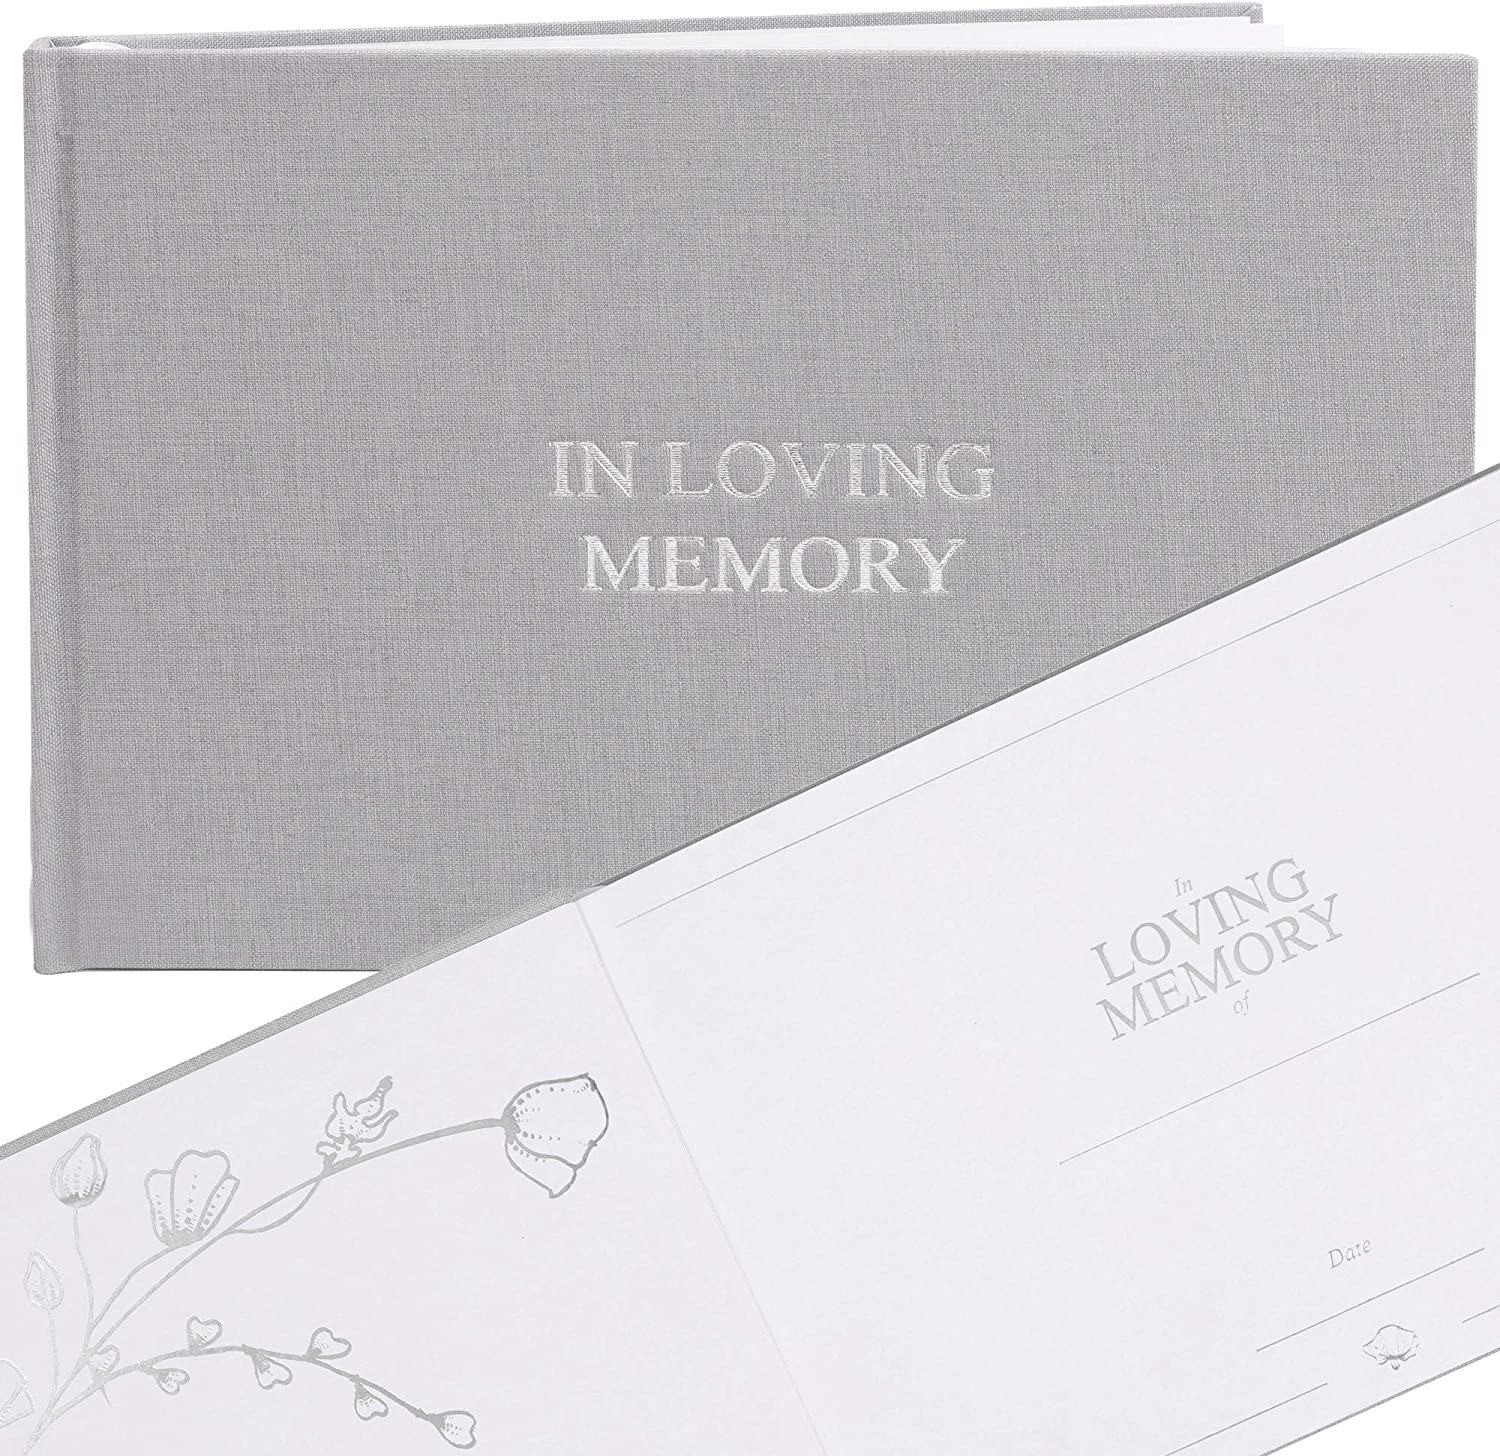 "FLUYTCO Funeral Guest Book in Loving Memory (120 Pages) - Linen Hardcover - Memorial Service, Celebration of Life - Condolence & Remembrance Keepsake Registry Book - 7.5"" x 10.5"""